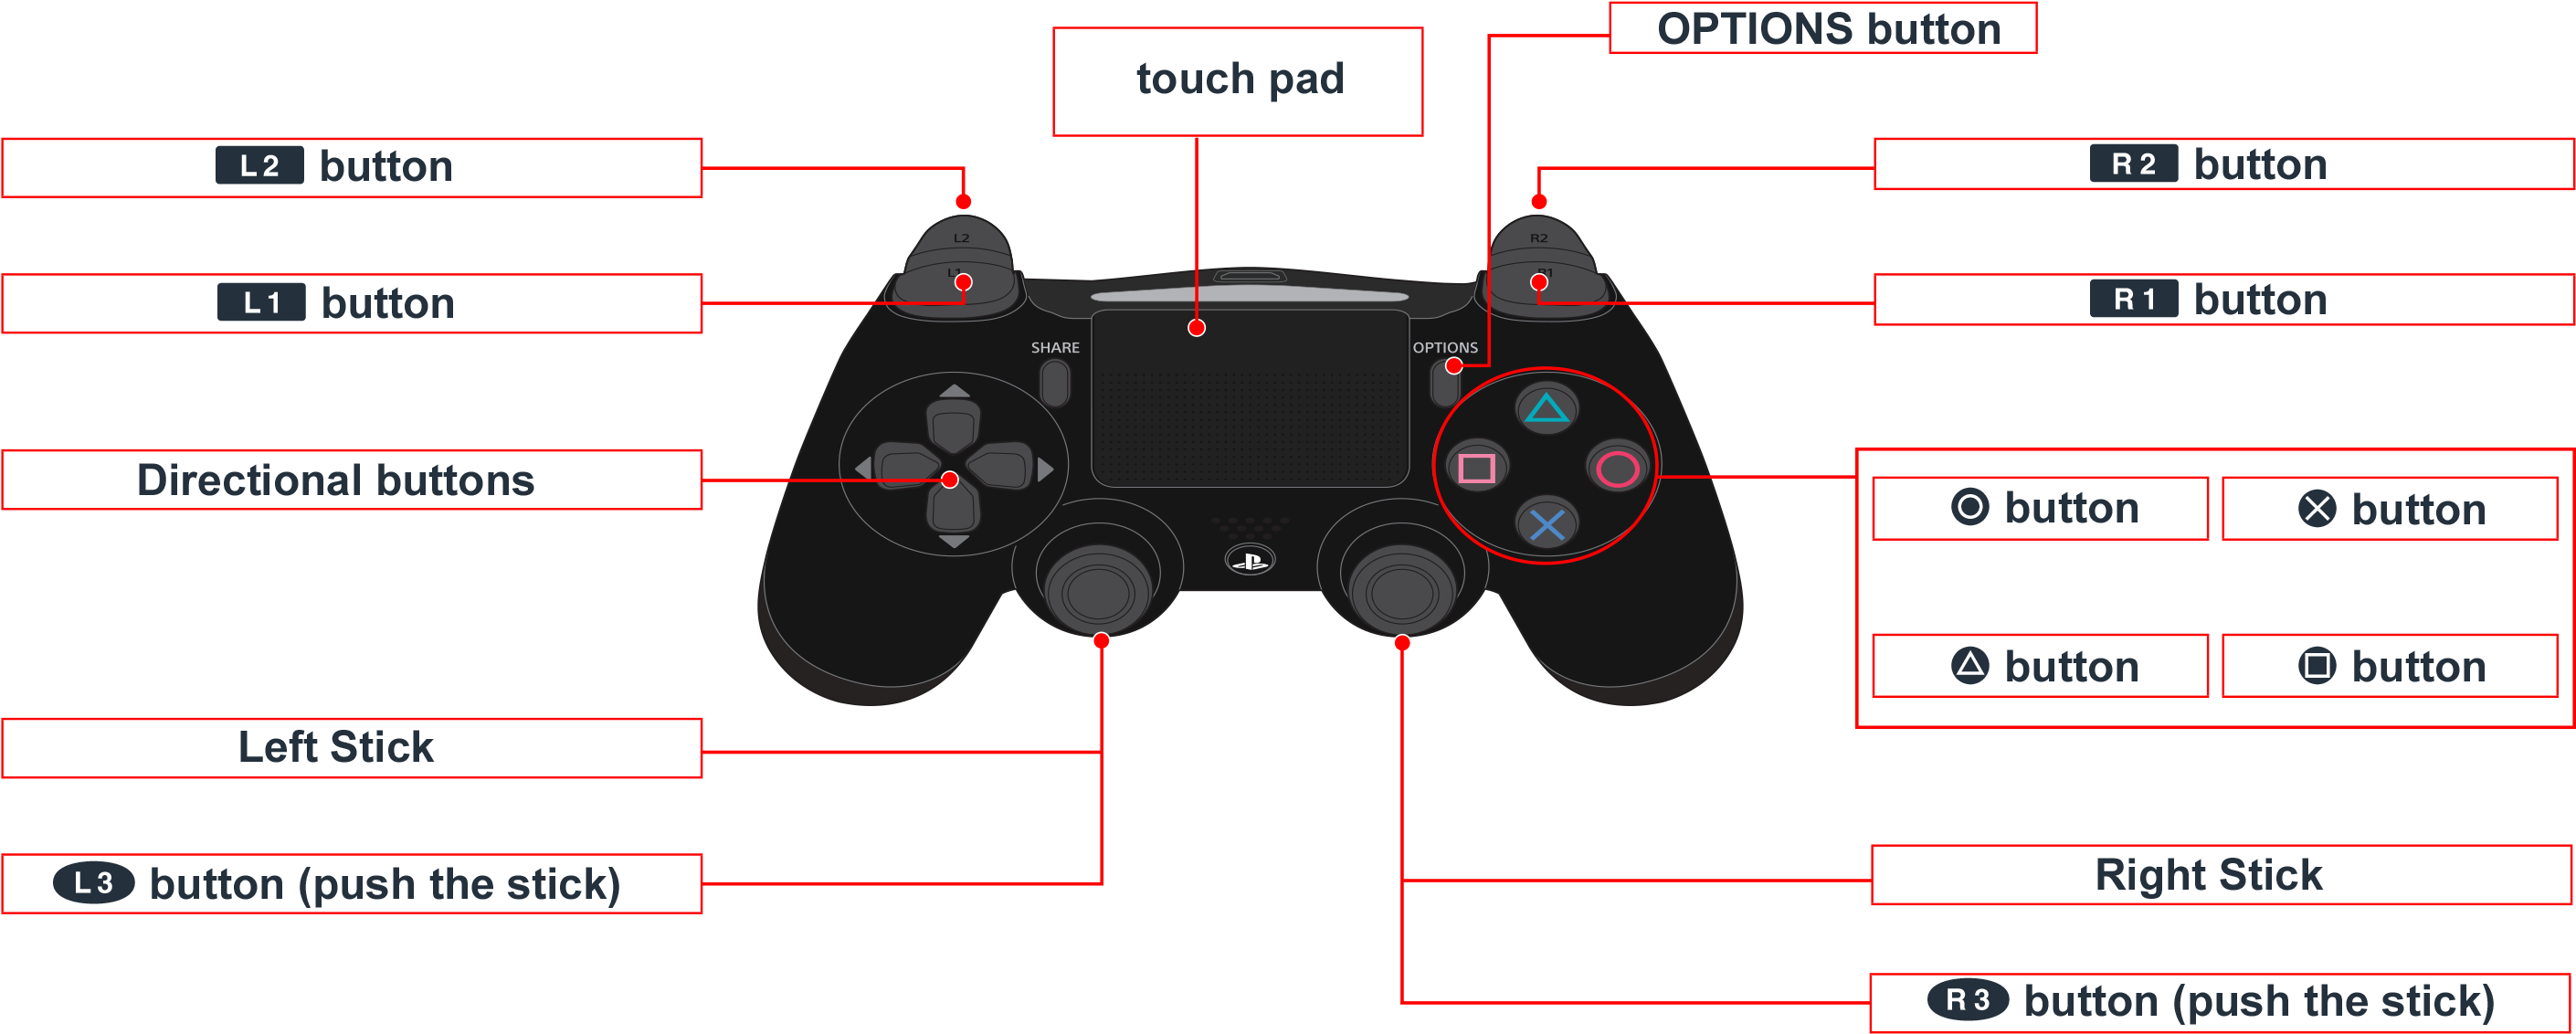 Dualshock 4 buttons png. Download hd wireless controller